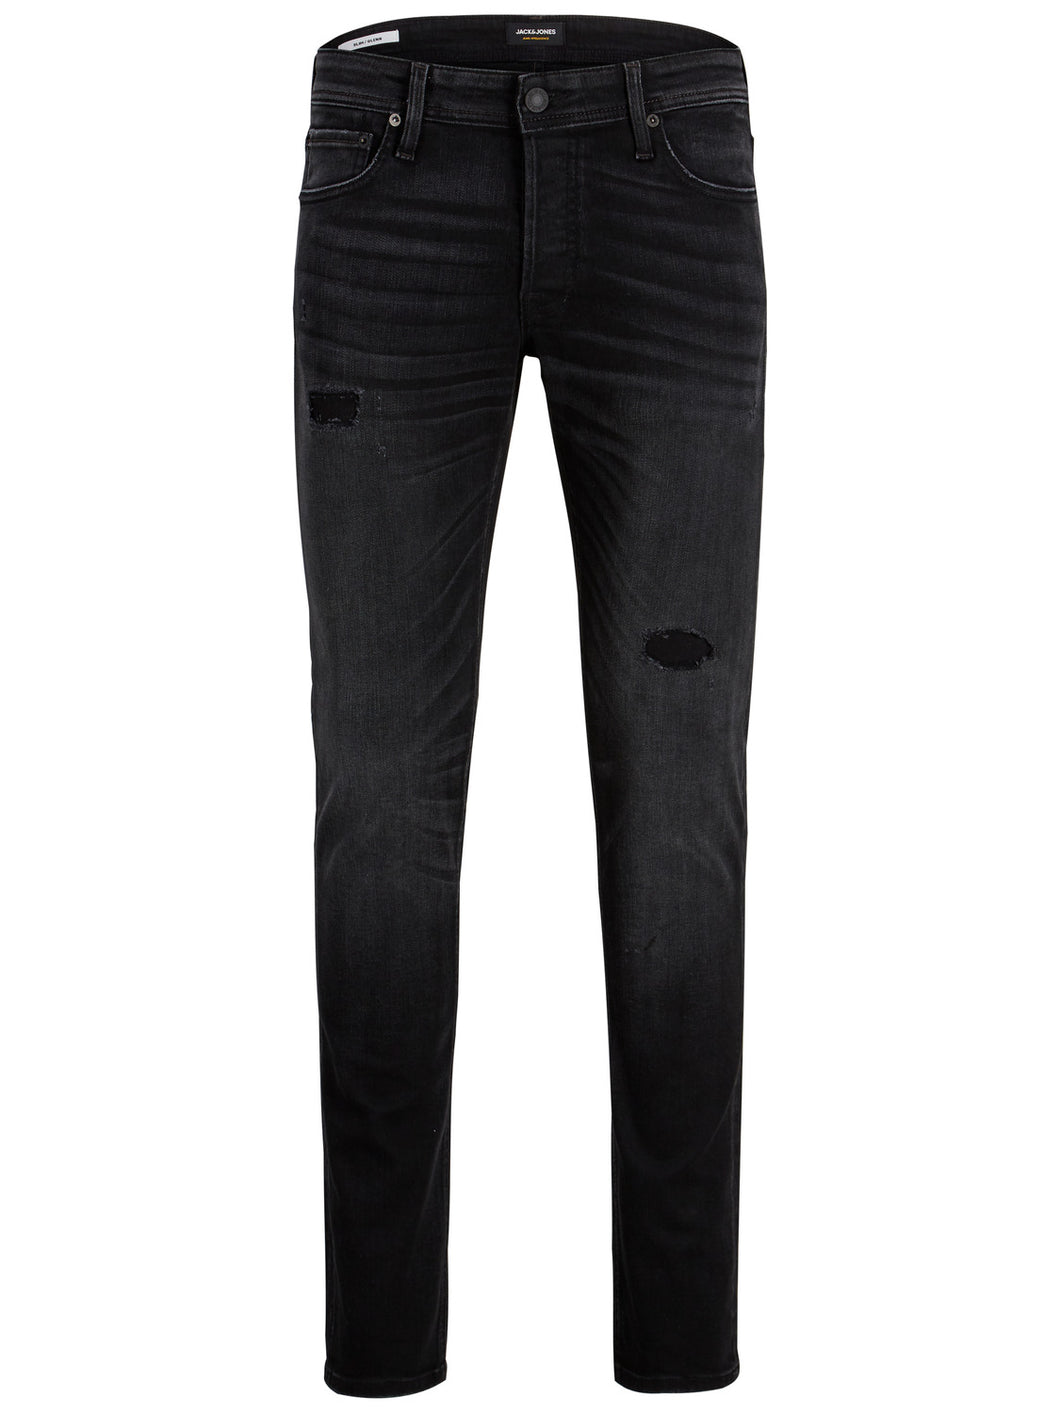 JJIGLENN Jeans - black denim